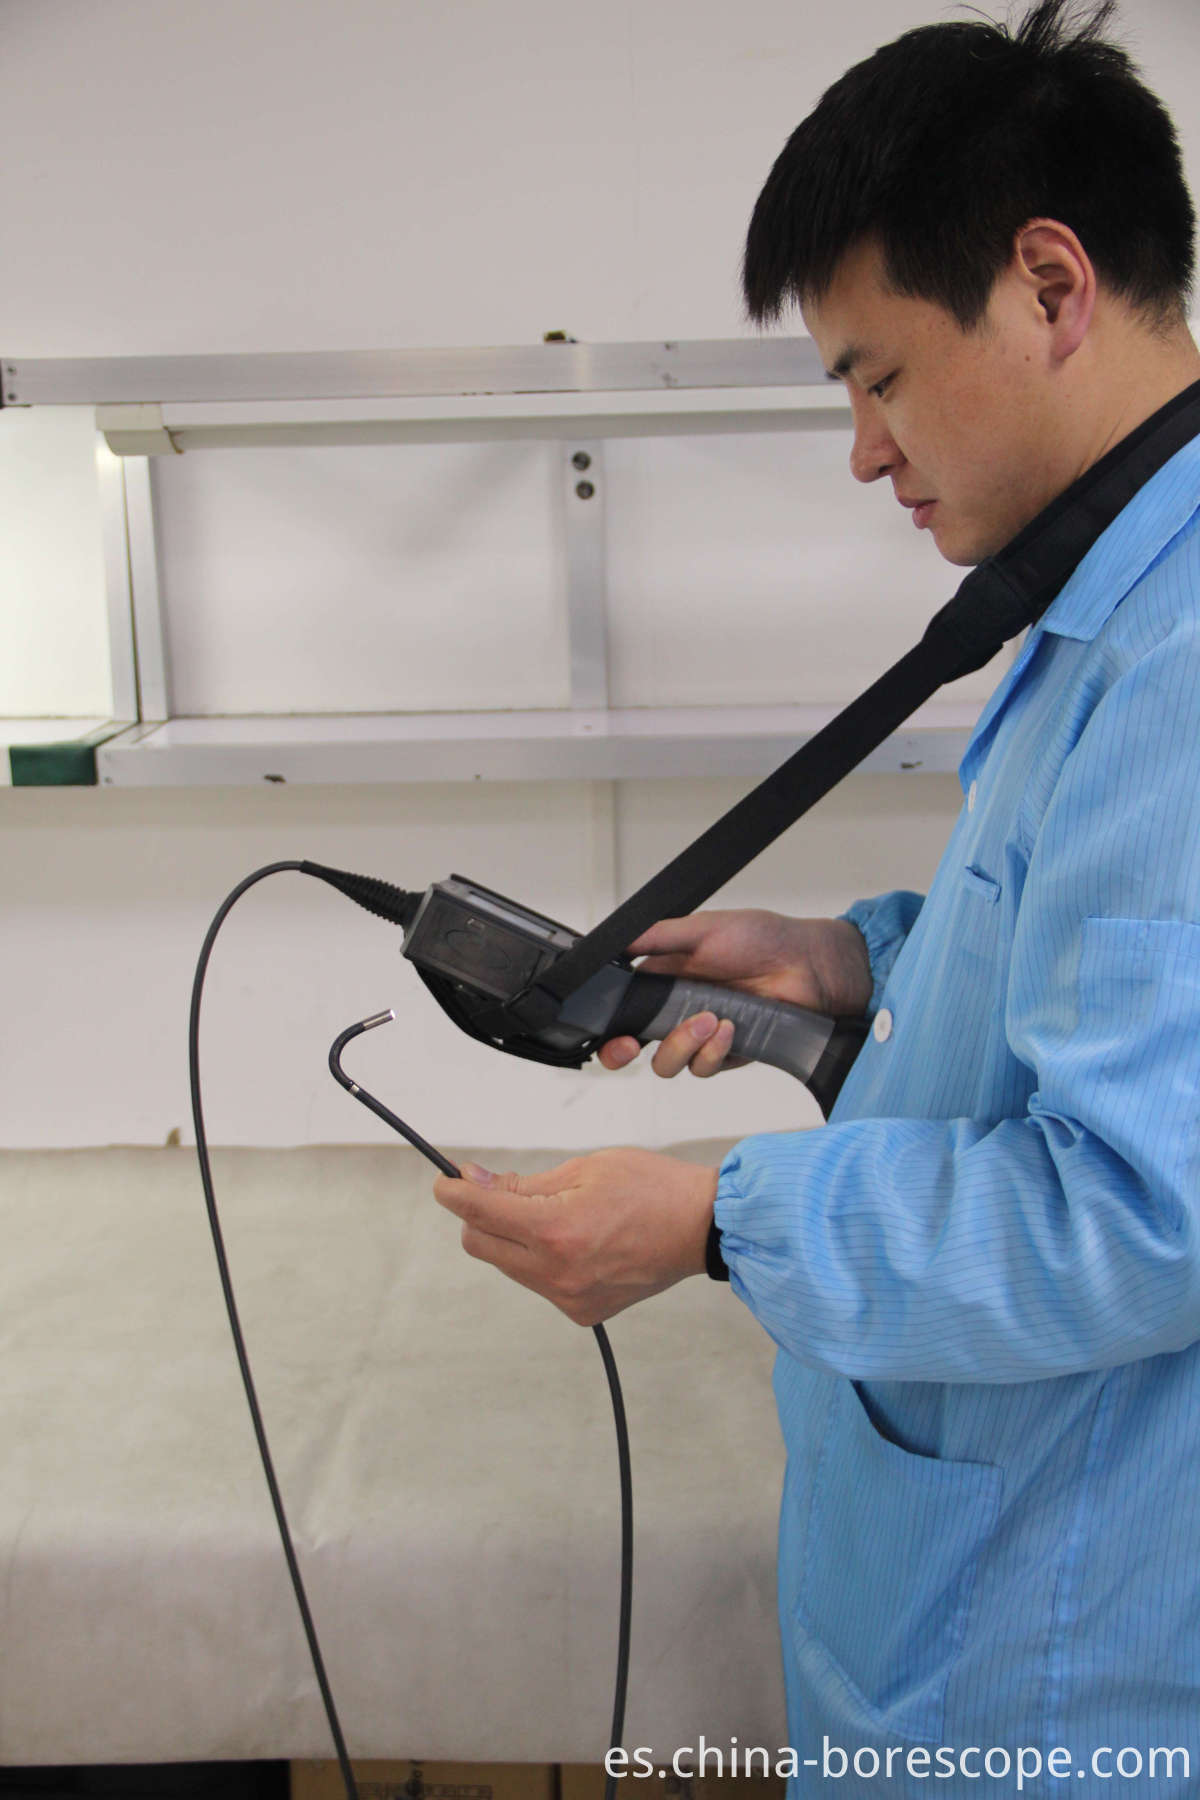 Handheld video borescope